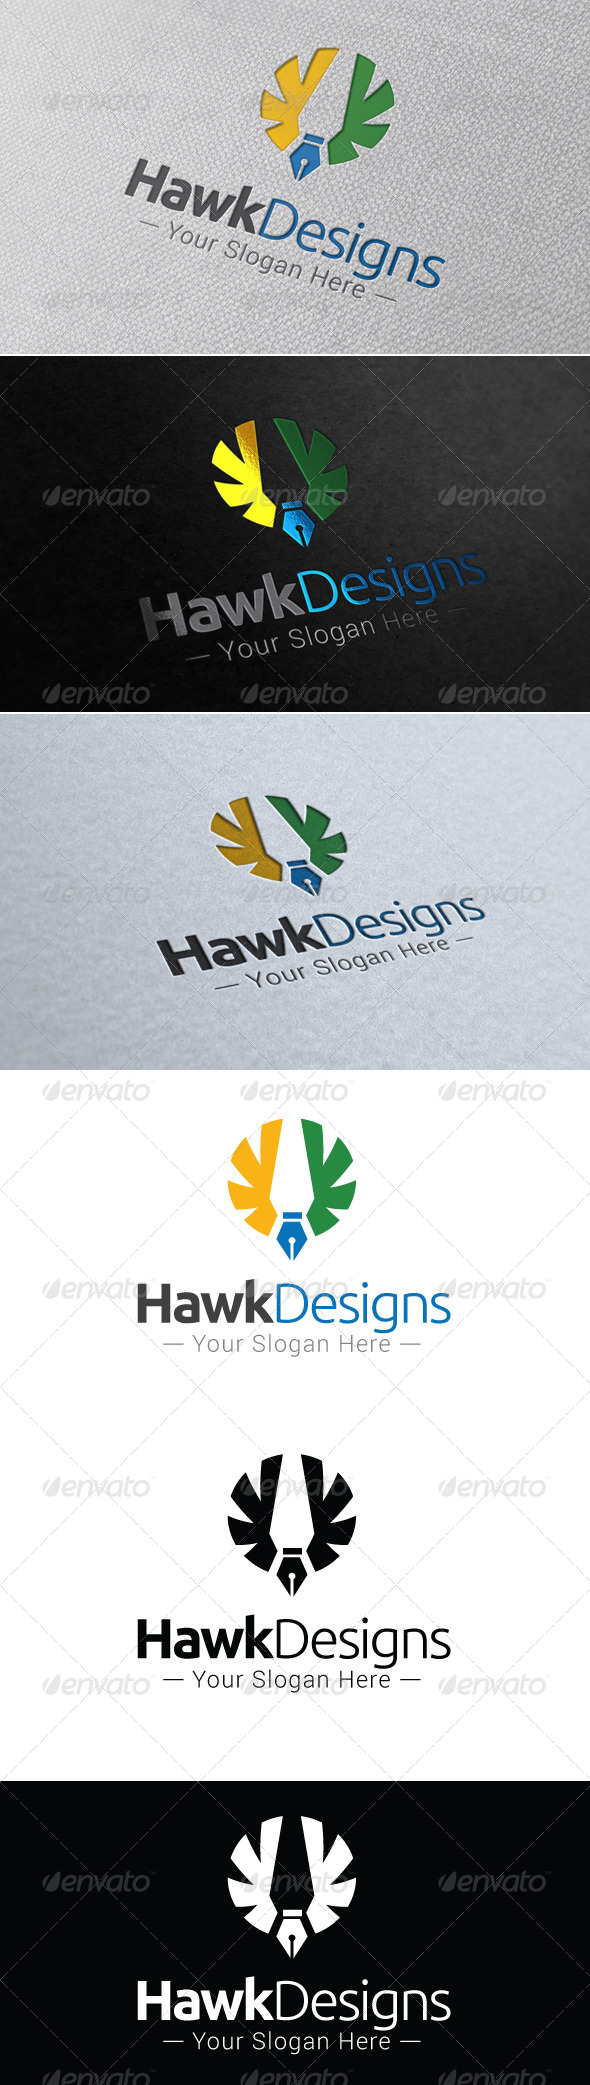 Hawk Designs Logo Template